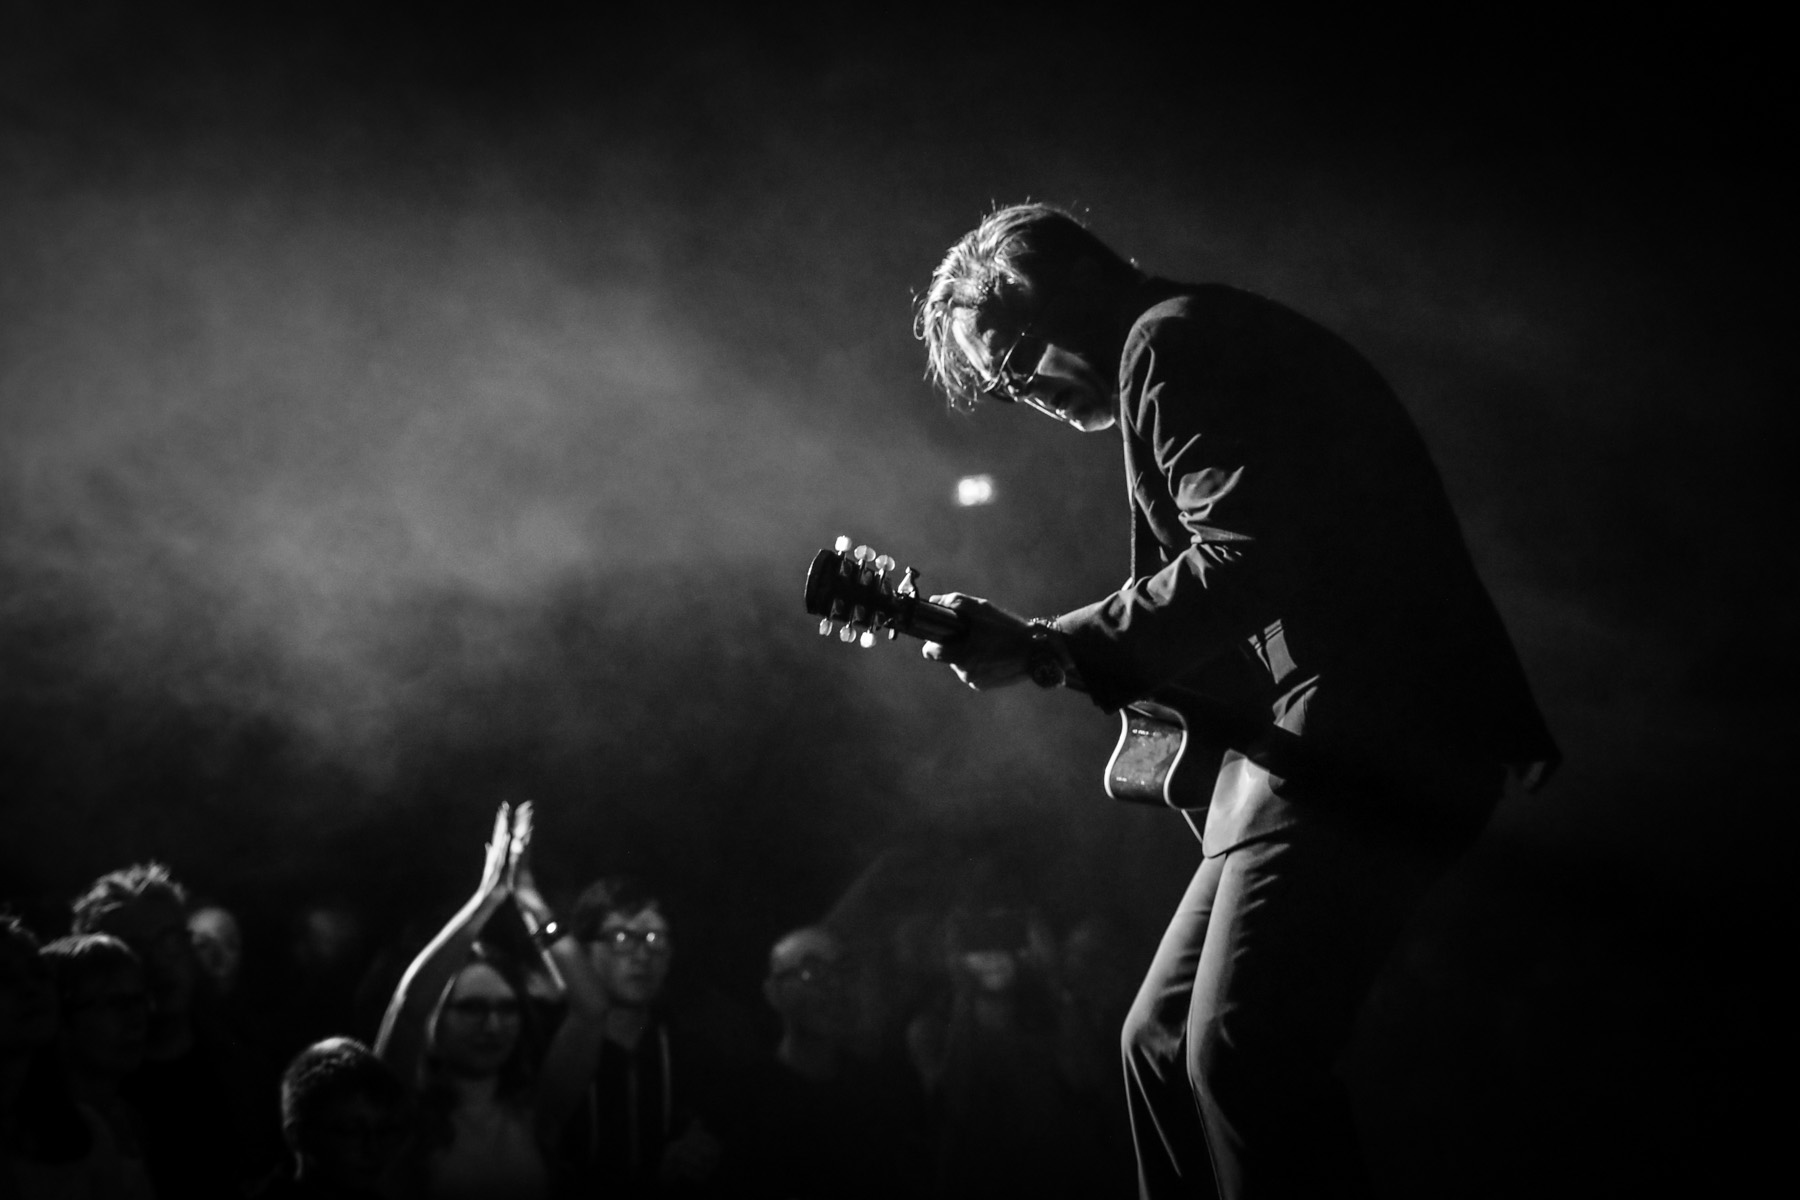 Joe Bonamassa at the Royal Albert Hall by Christie Goodwin